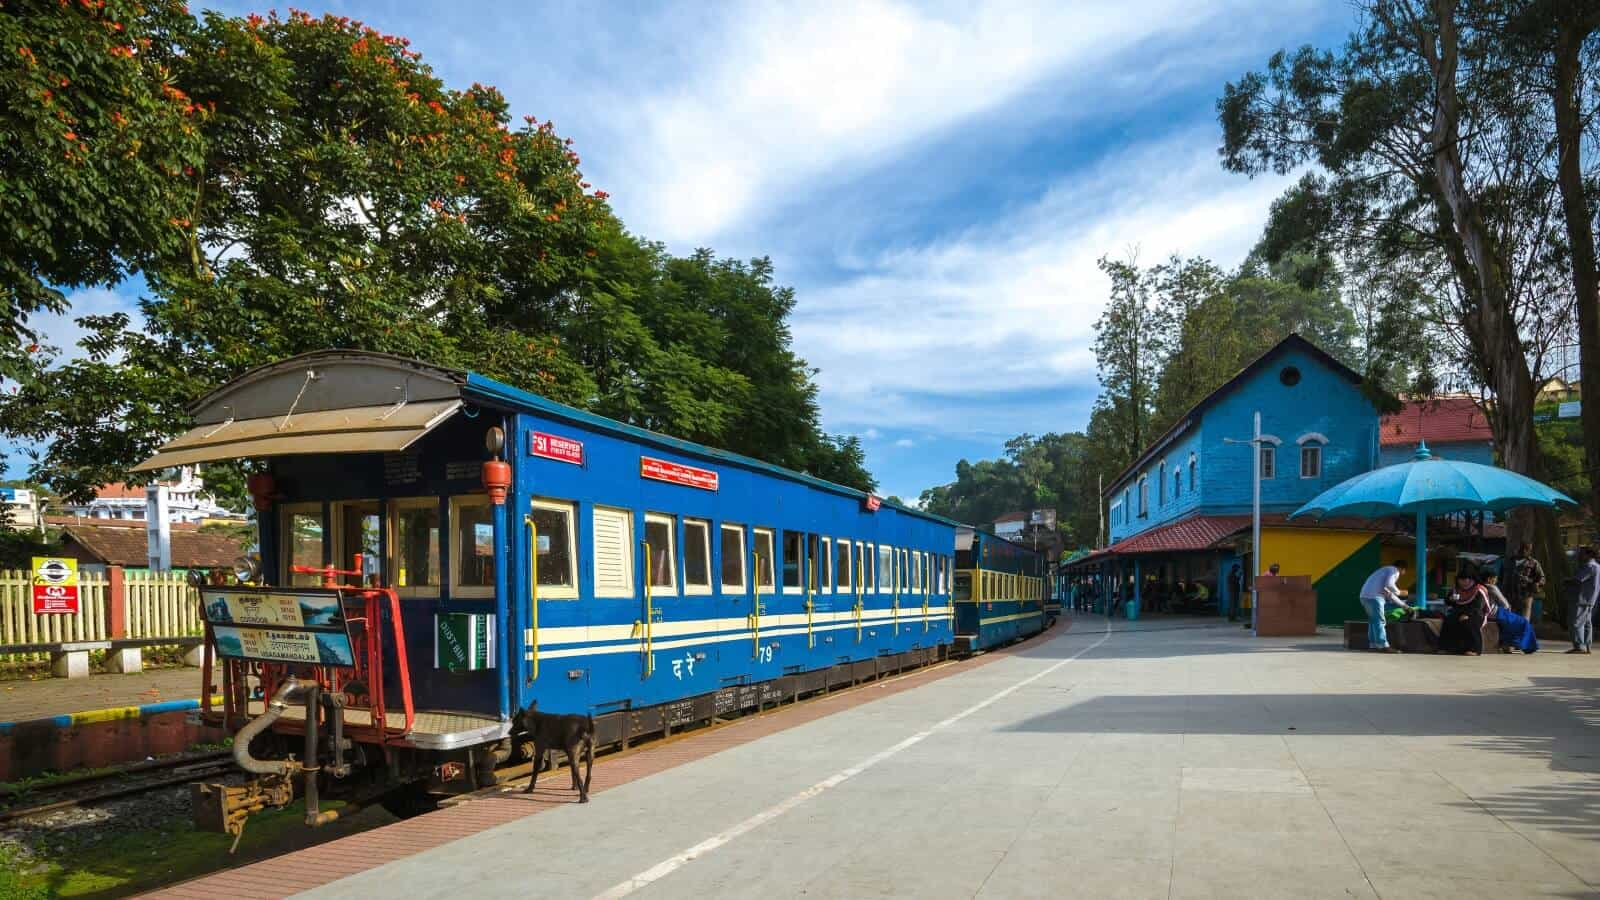 Ooty railway station